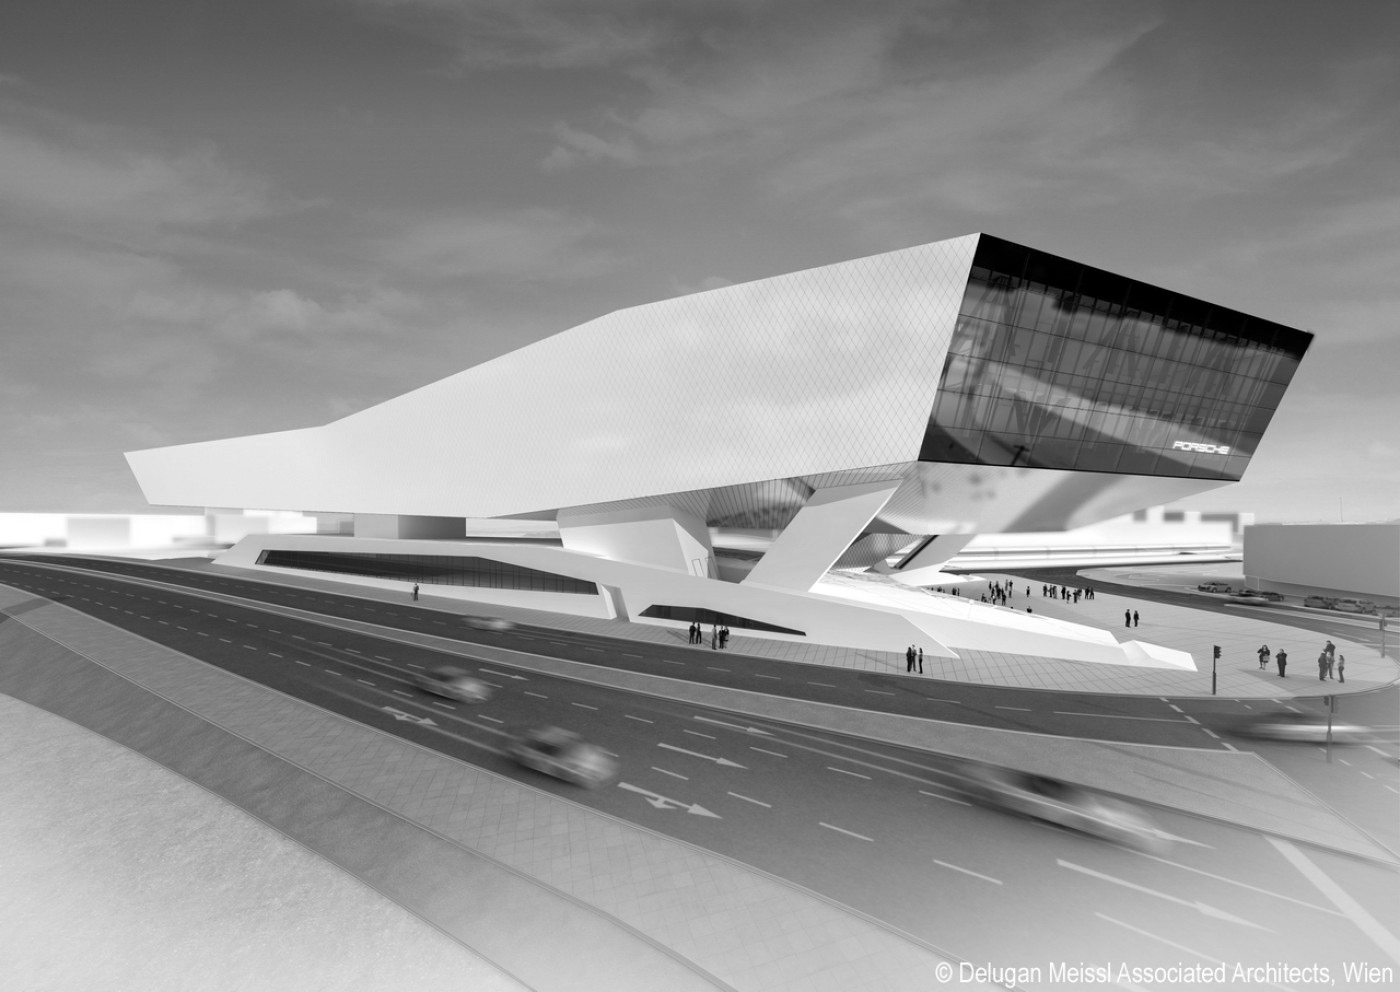 npm_Porschemuseum_bild_01_mit_copyright_Delugan Meissl Associated Architects_1400x0_sw